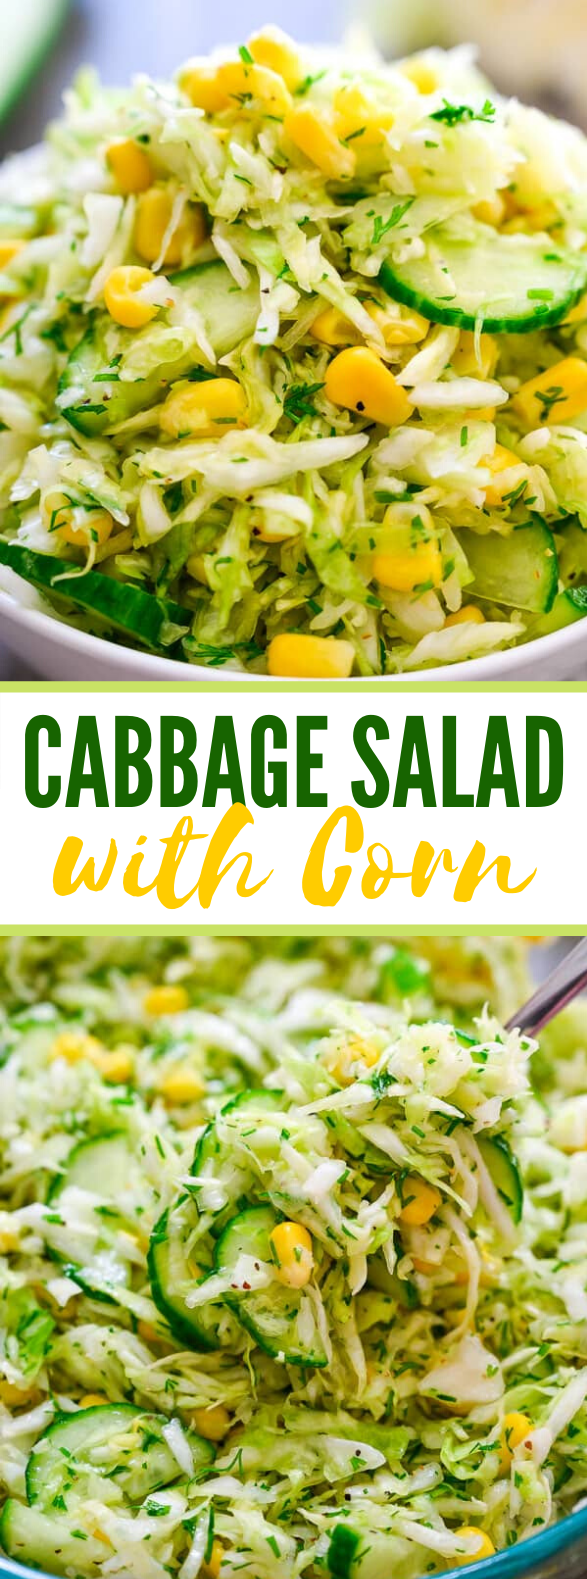 CABBAGE SALAD WITH CORN #meals #vegetarian